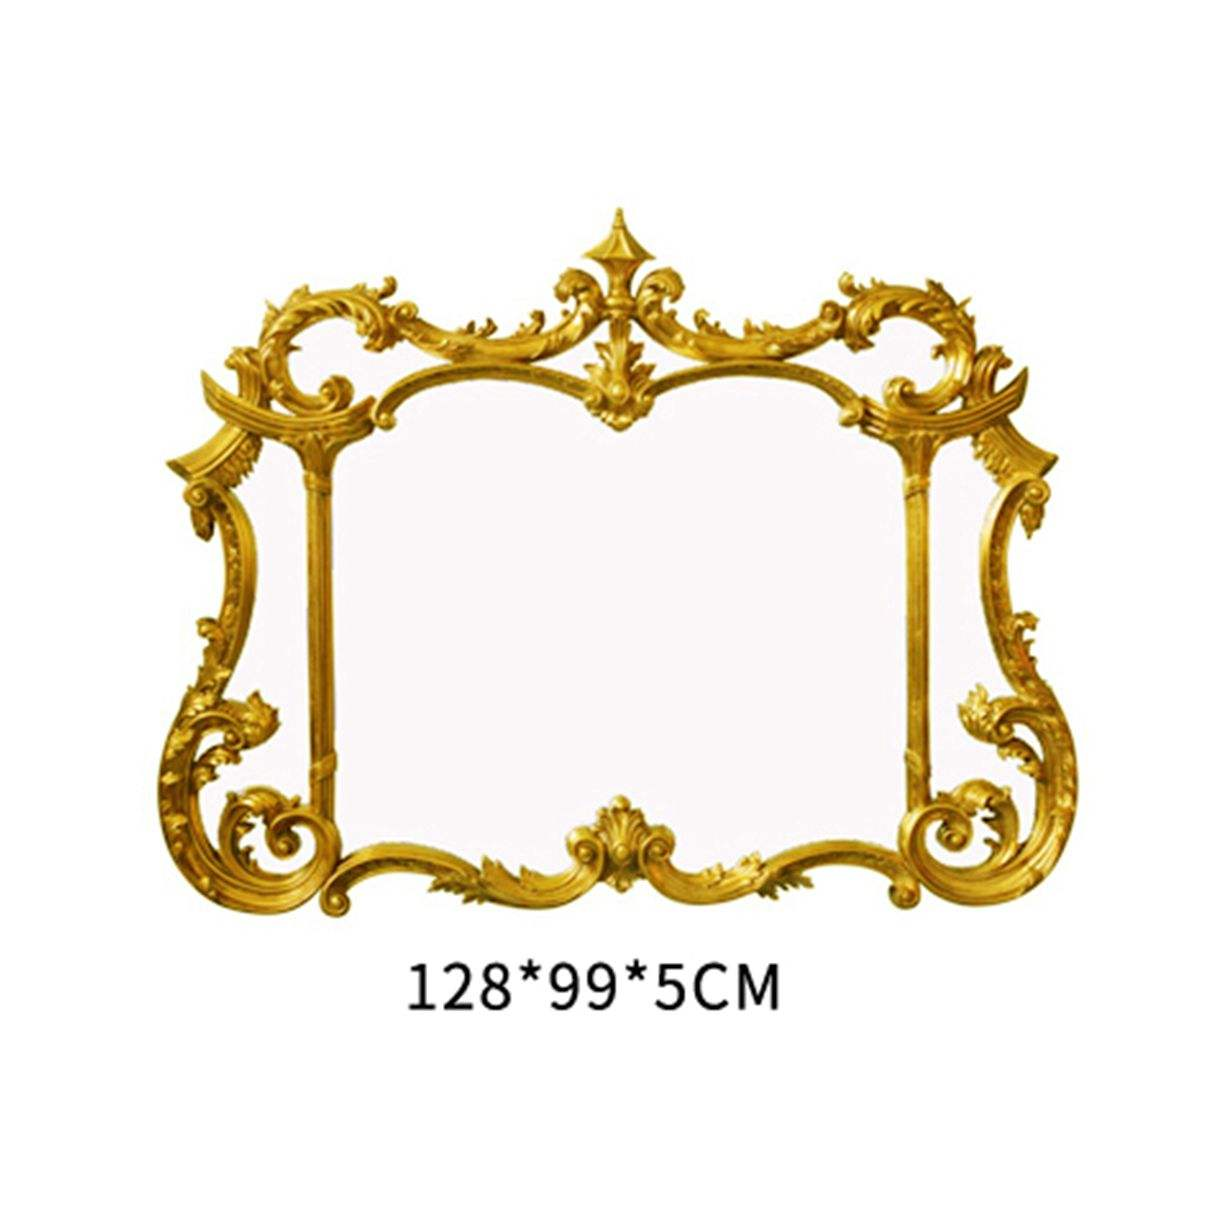 Antique Style Gold Tone Hinged wall mirrors decorative